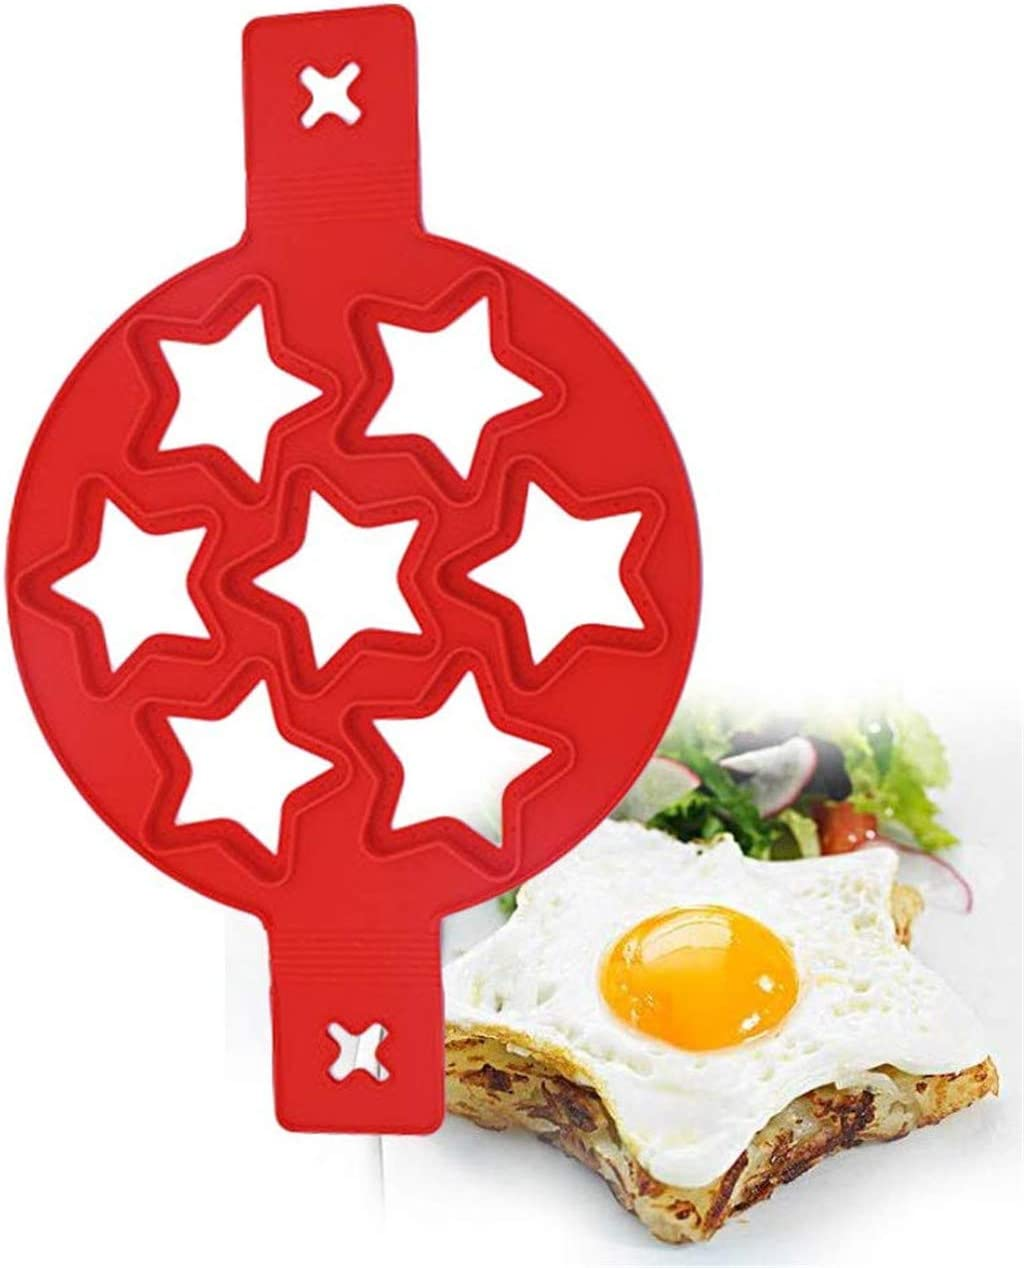 New Upgrade Silicone Omelette Mould Pancake Fried Egg Ring Mold 7 Holes Heart Reusable Non Stick Pancake Fried Egg Mold Red, Love Style